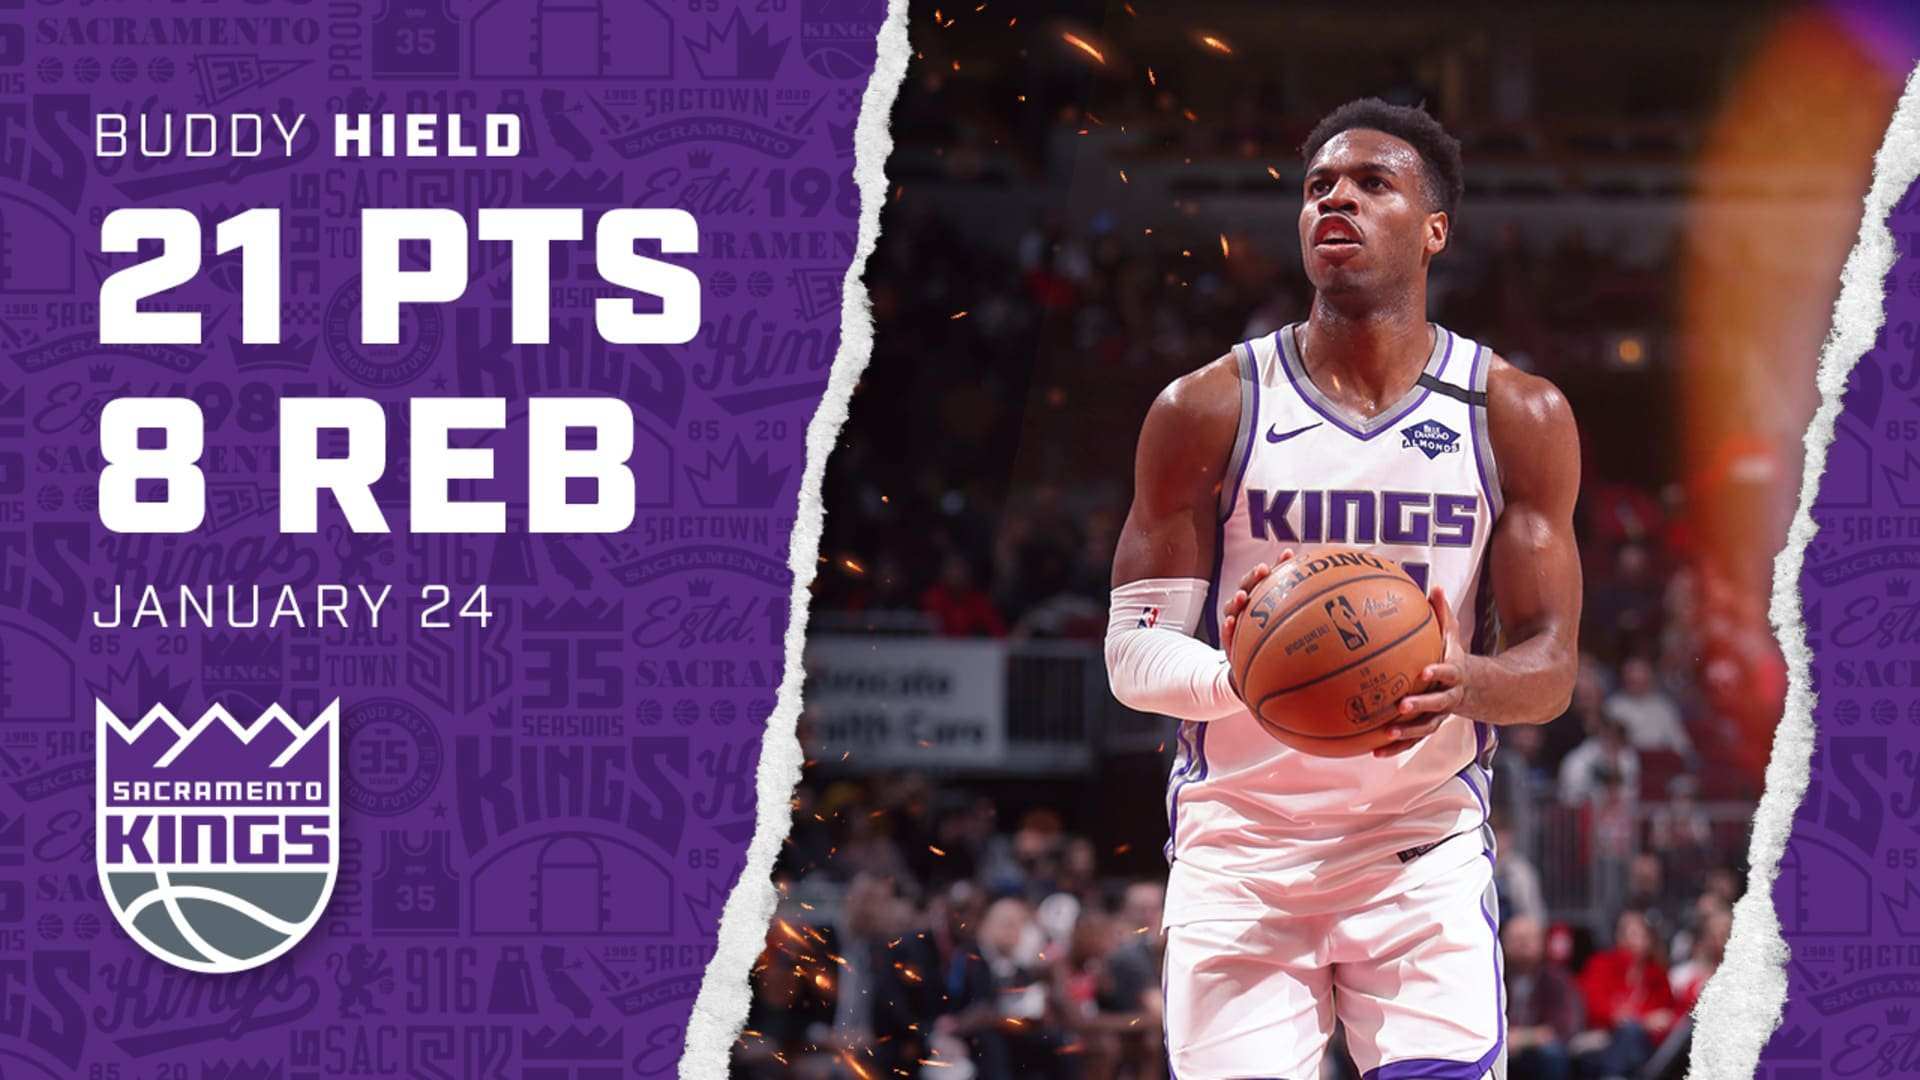 Buddy Helps Lead the Squad to Victory! | Kings vs Bulls 1.24.20